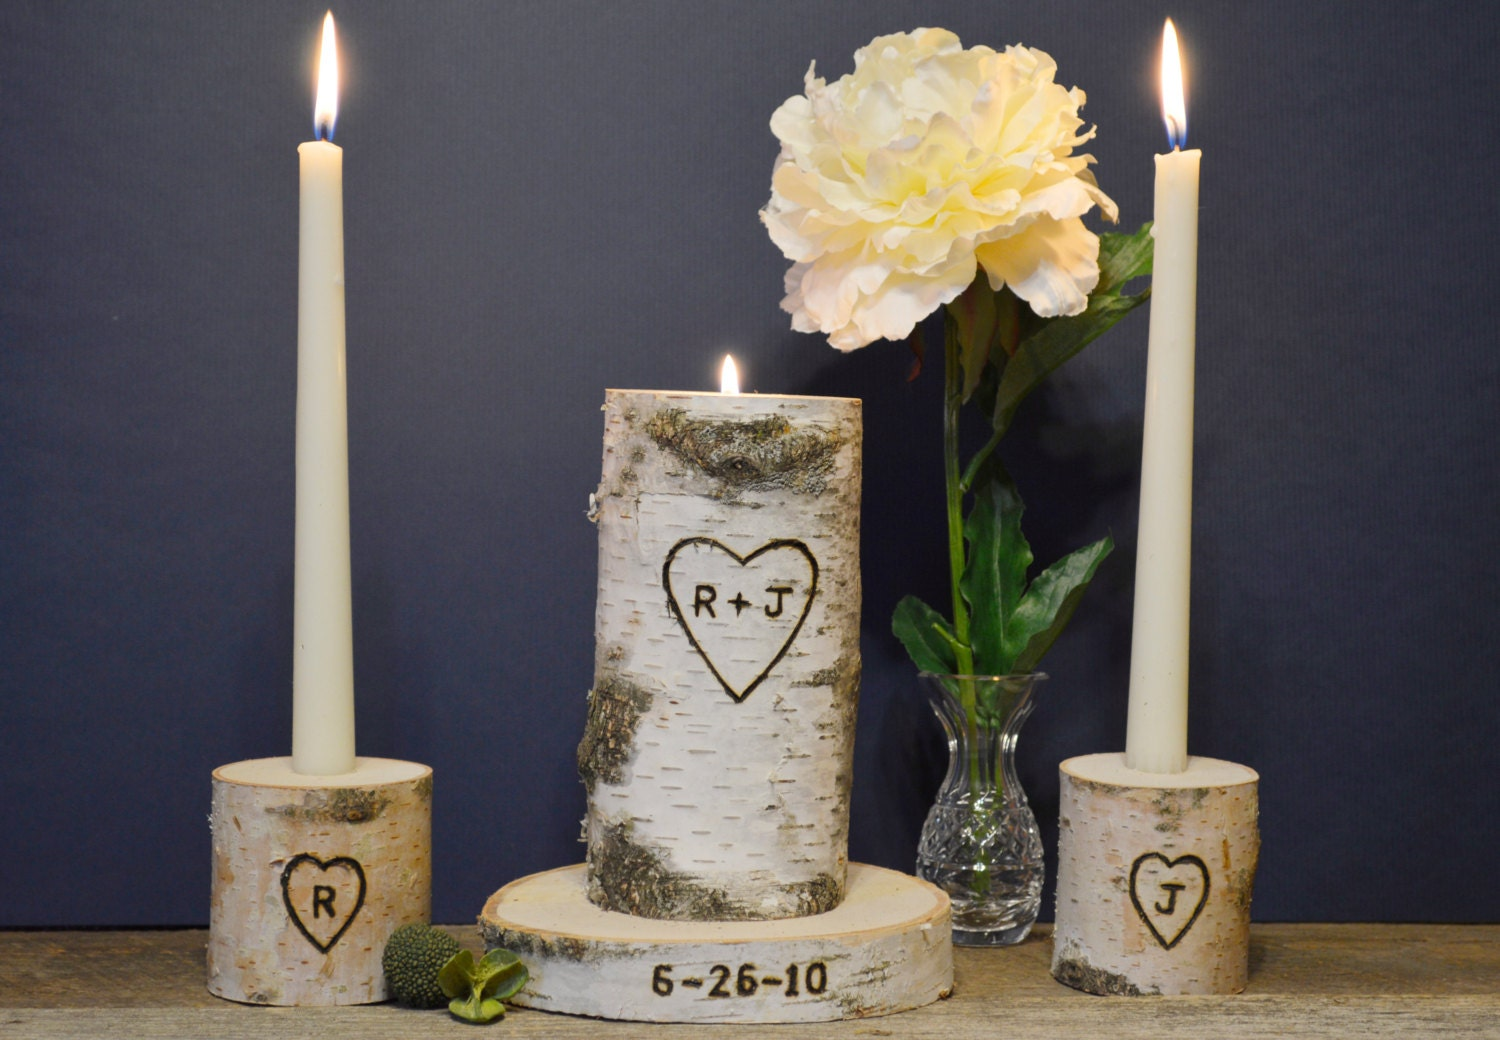 Wedding Candles: Personalized Unity Candle Set With Wedding Date Rustic Birch